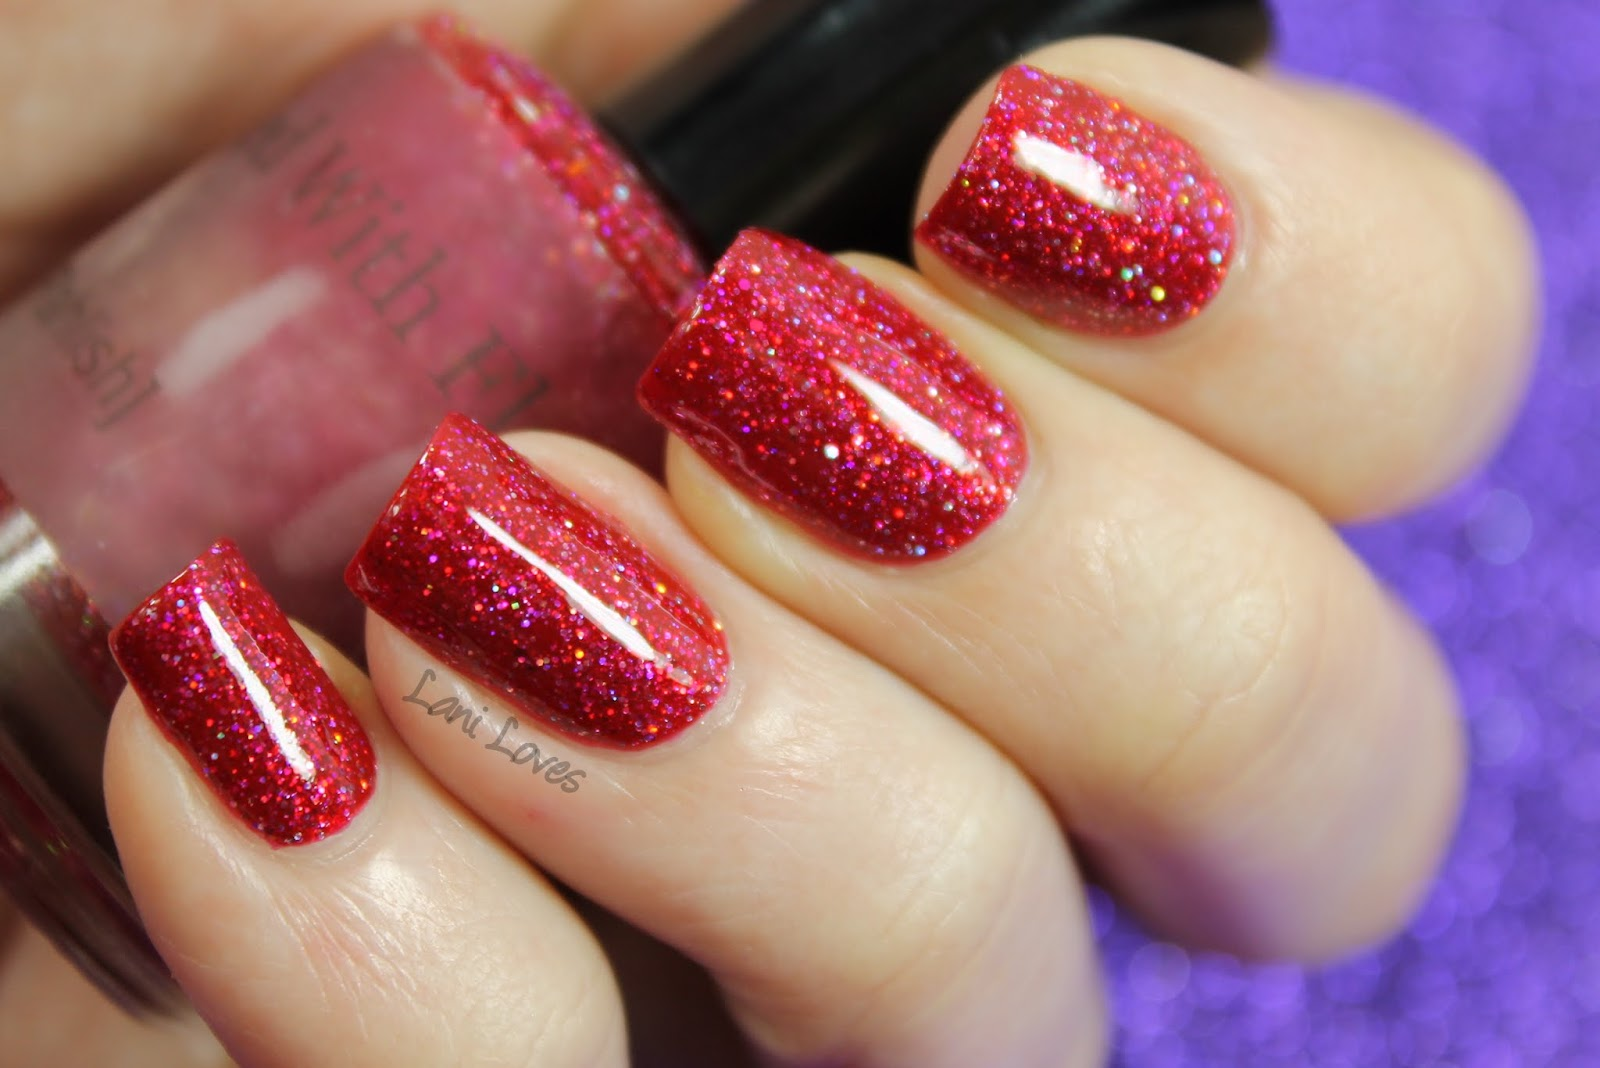 L'Oreal Lifetime Love + Pahlish Pianos Filled With Flames swatch